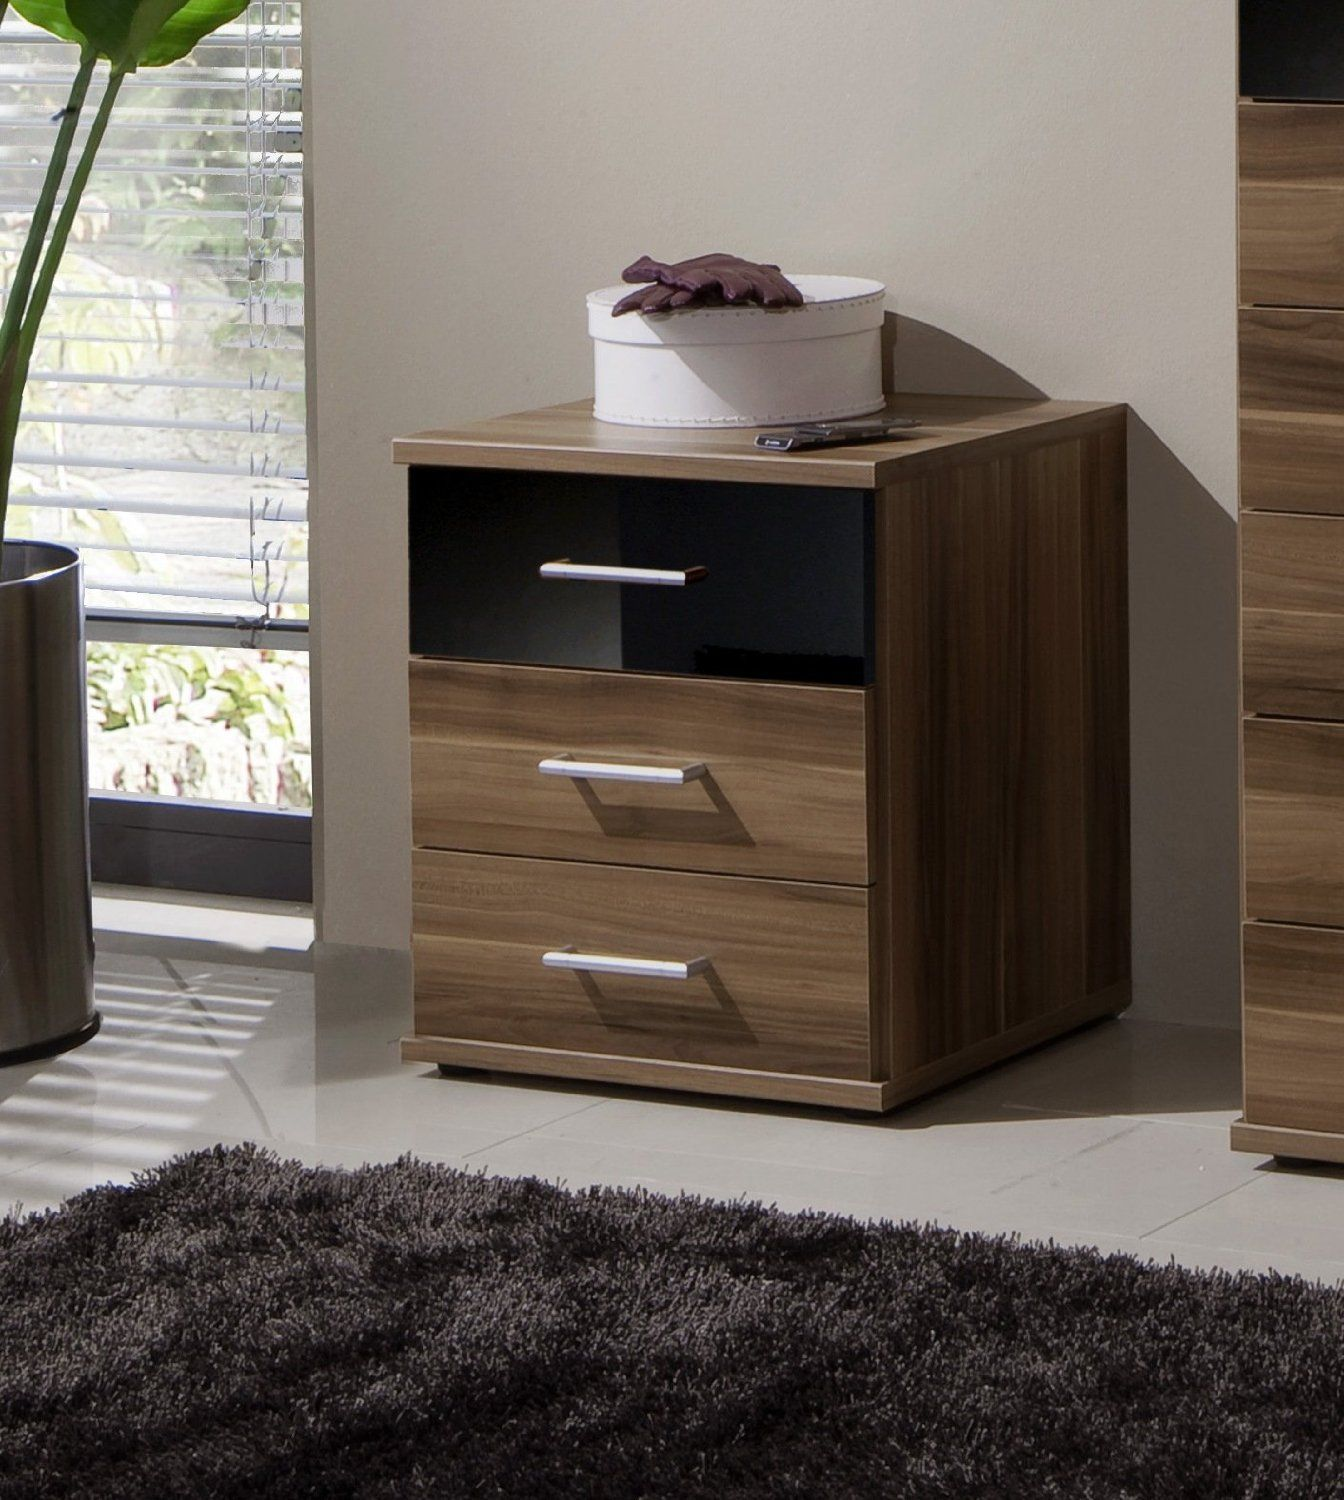 Dresden Bedside Chest Of Drawers Black Gloss and Walnut Effect by furniturefactor: Amazon.co.uk: Kitchen & Home